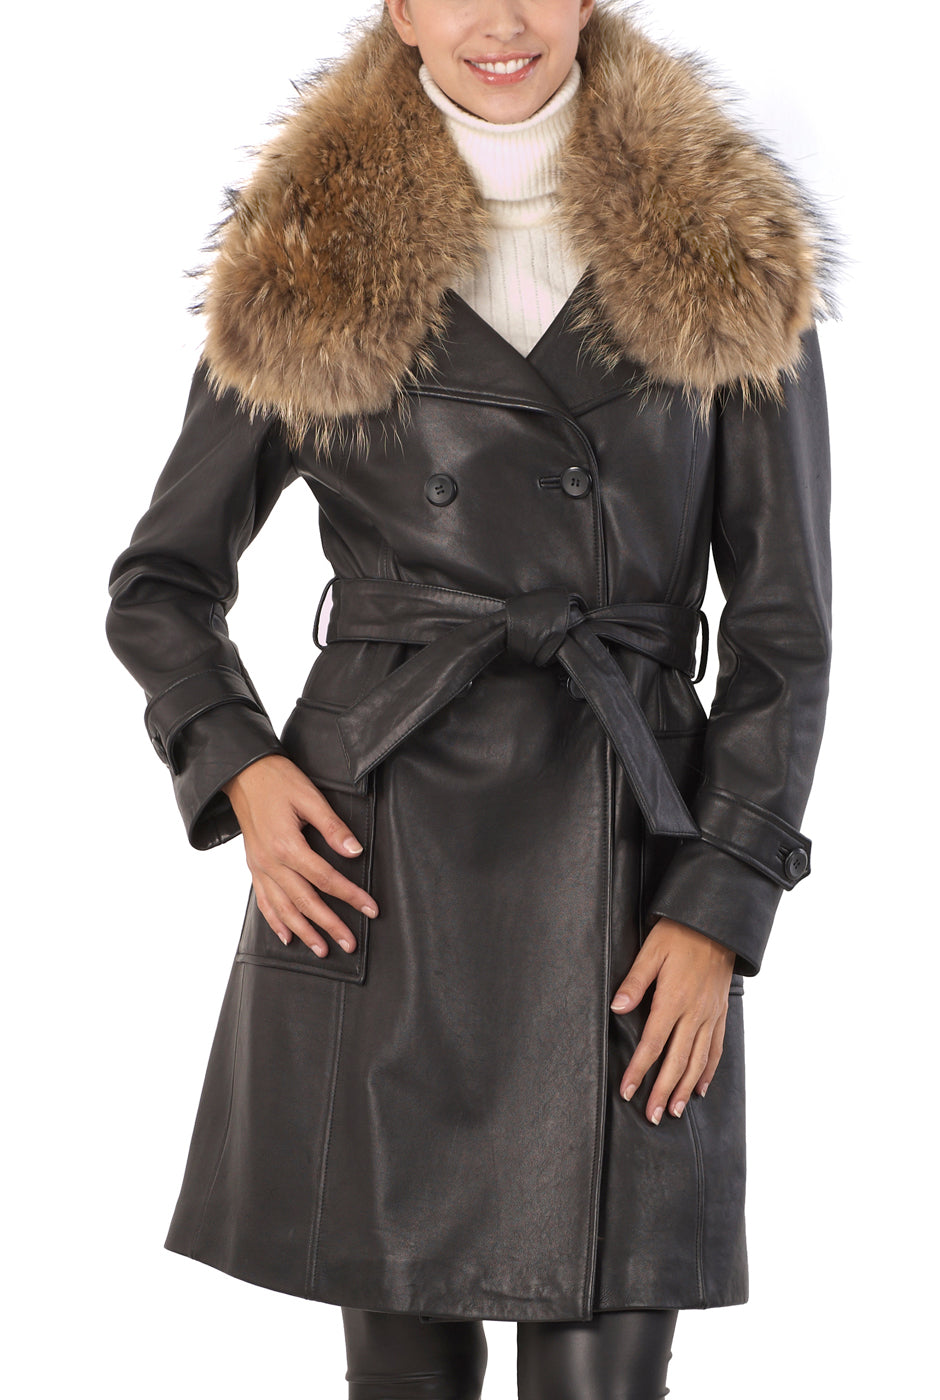 BGSD Women's Raccoon Fur Collar Lambskin Leather Trench Coat